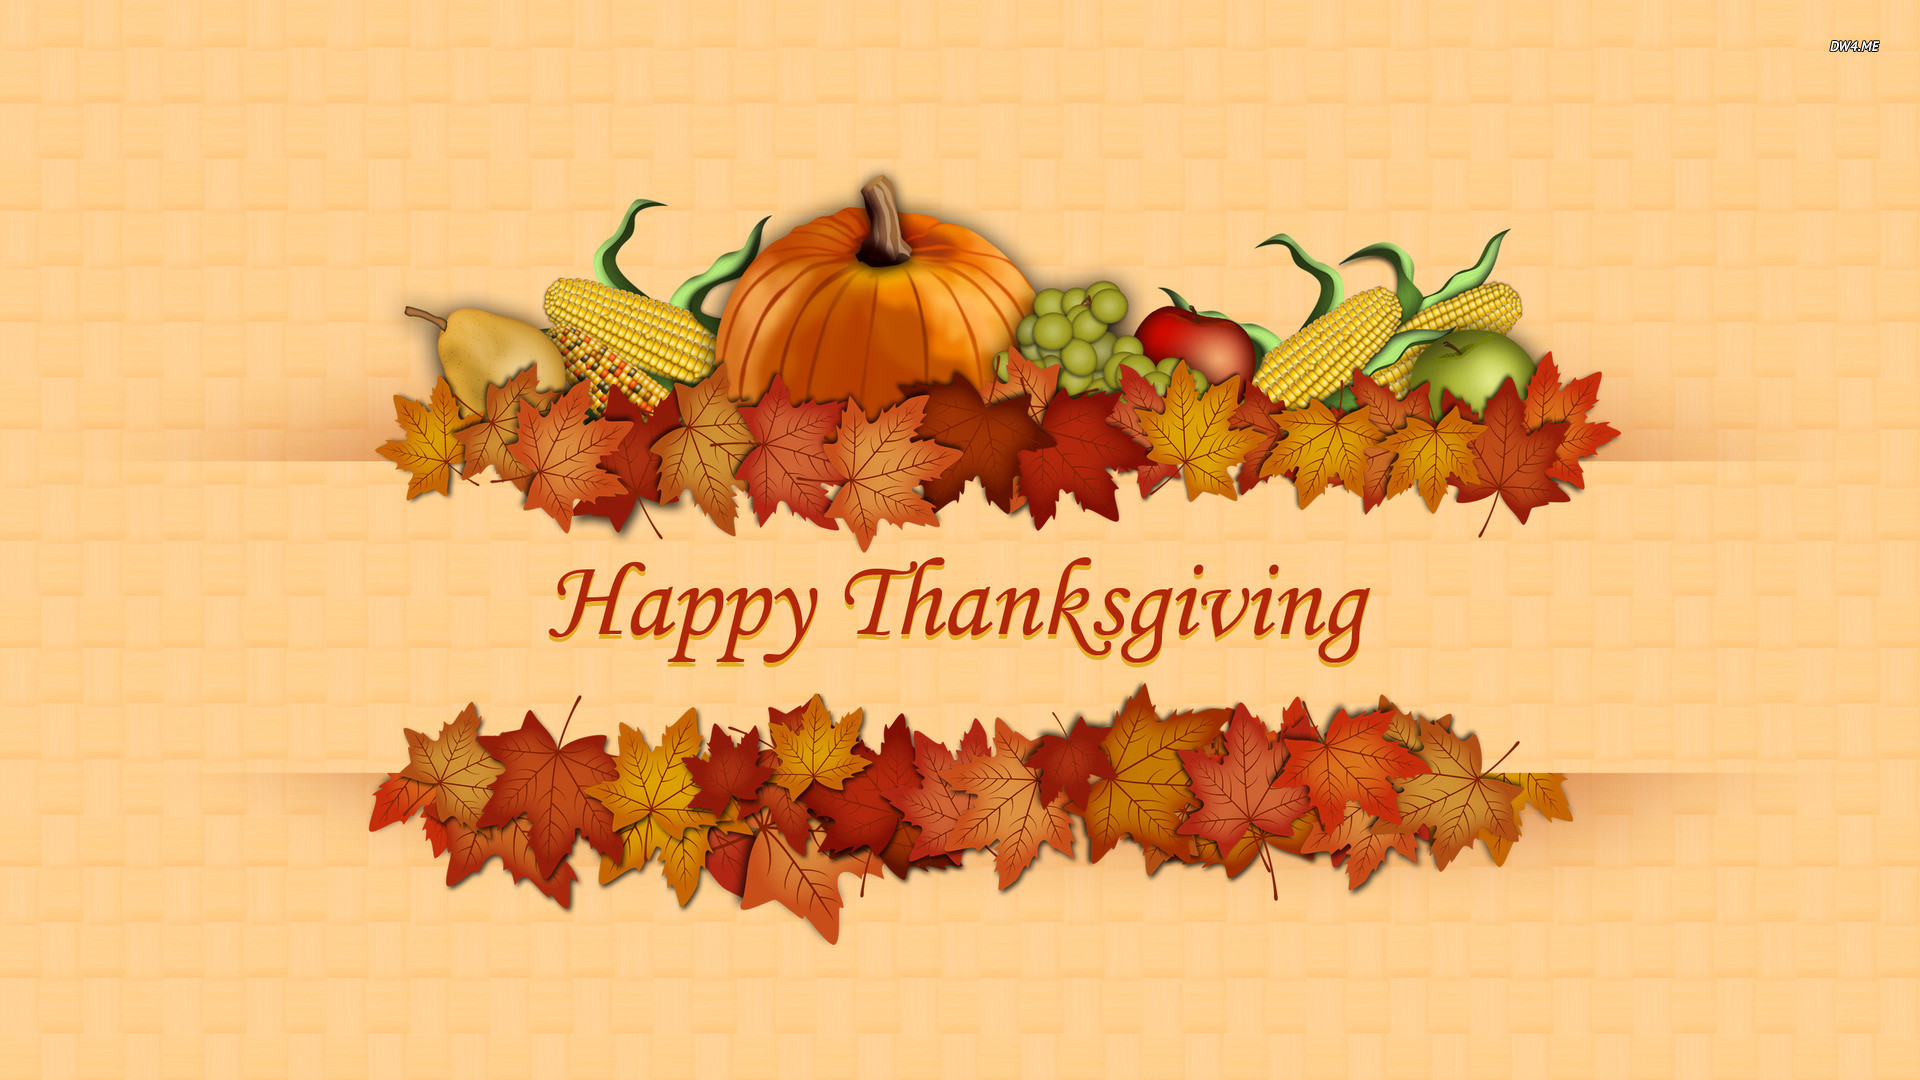 Thanksgiving Wallpaper Desktop 66 images 1920x1080